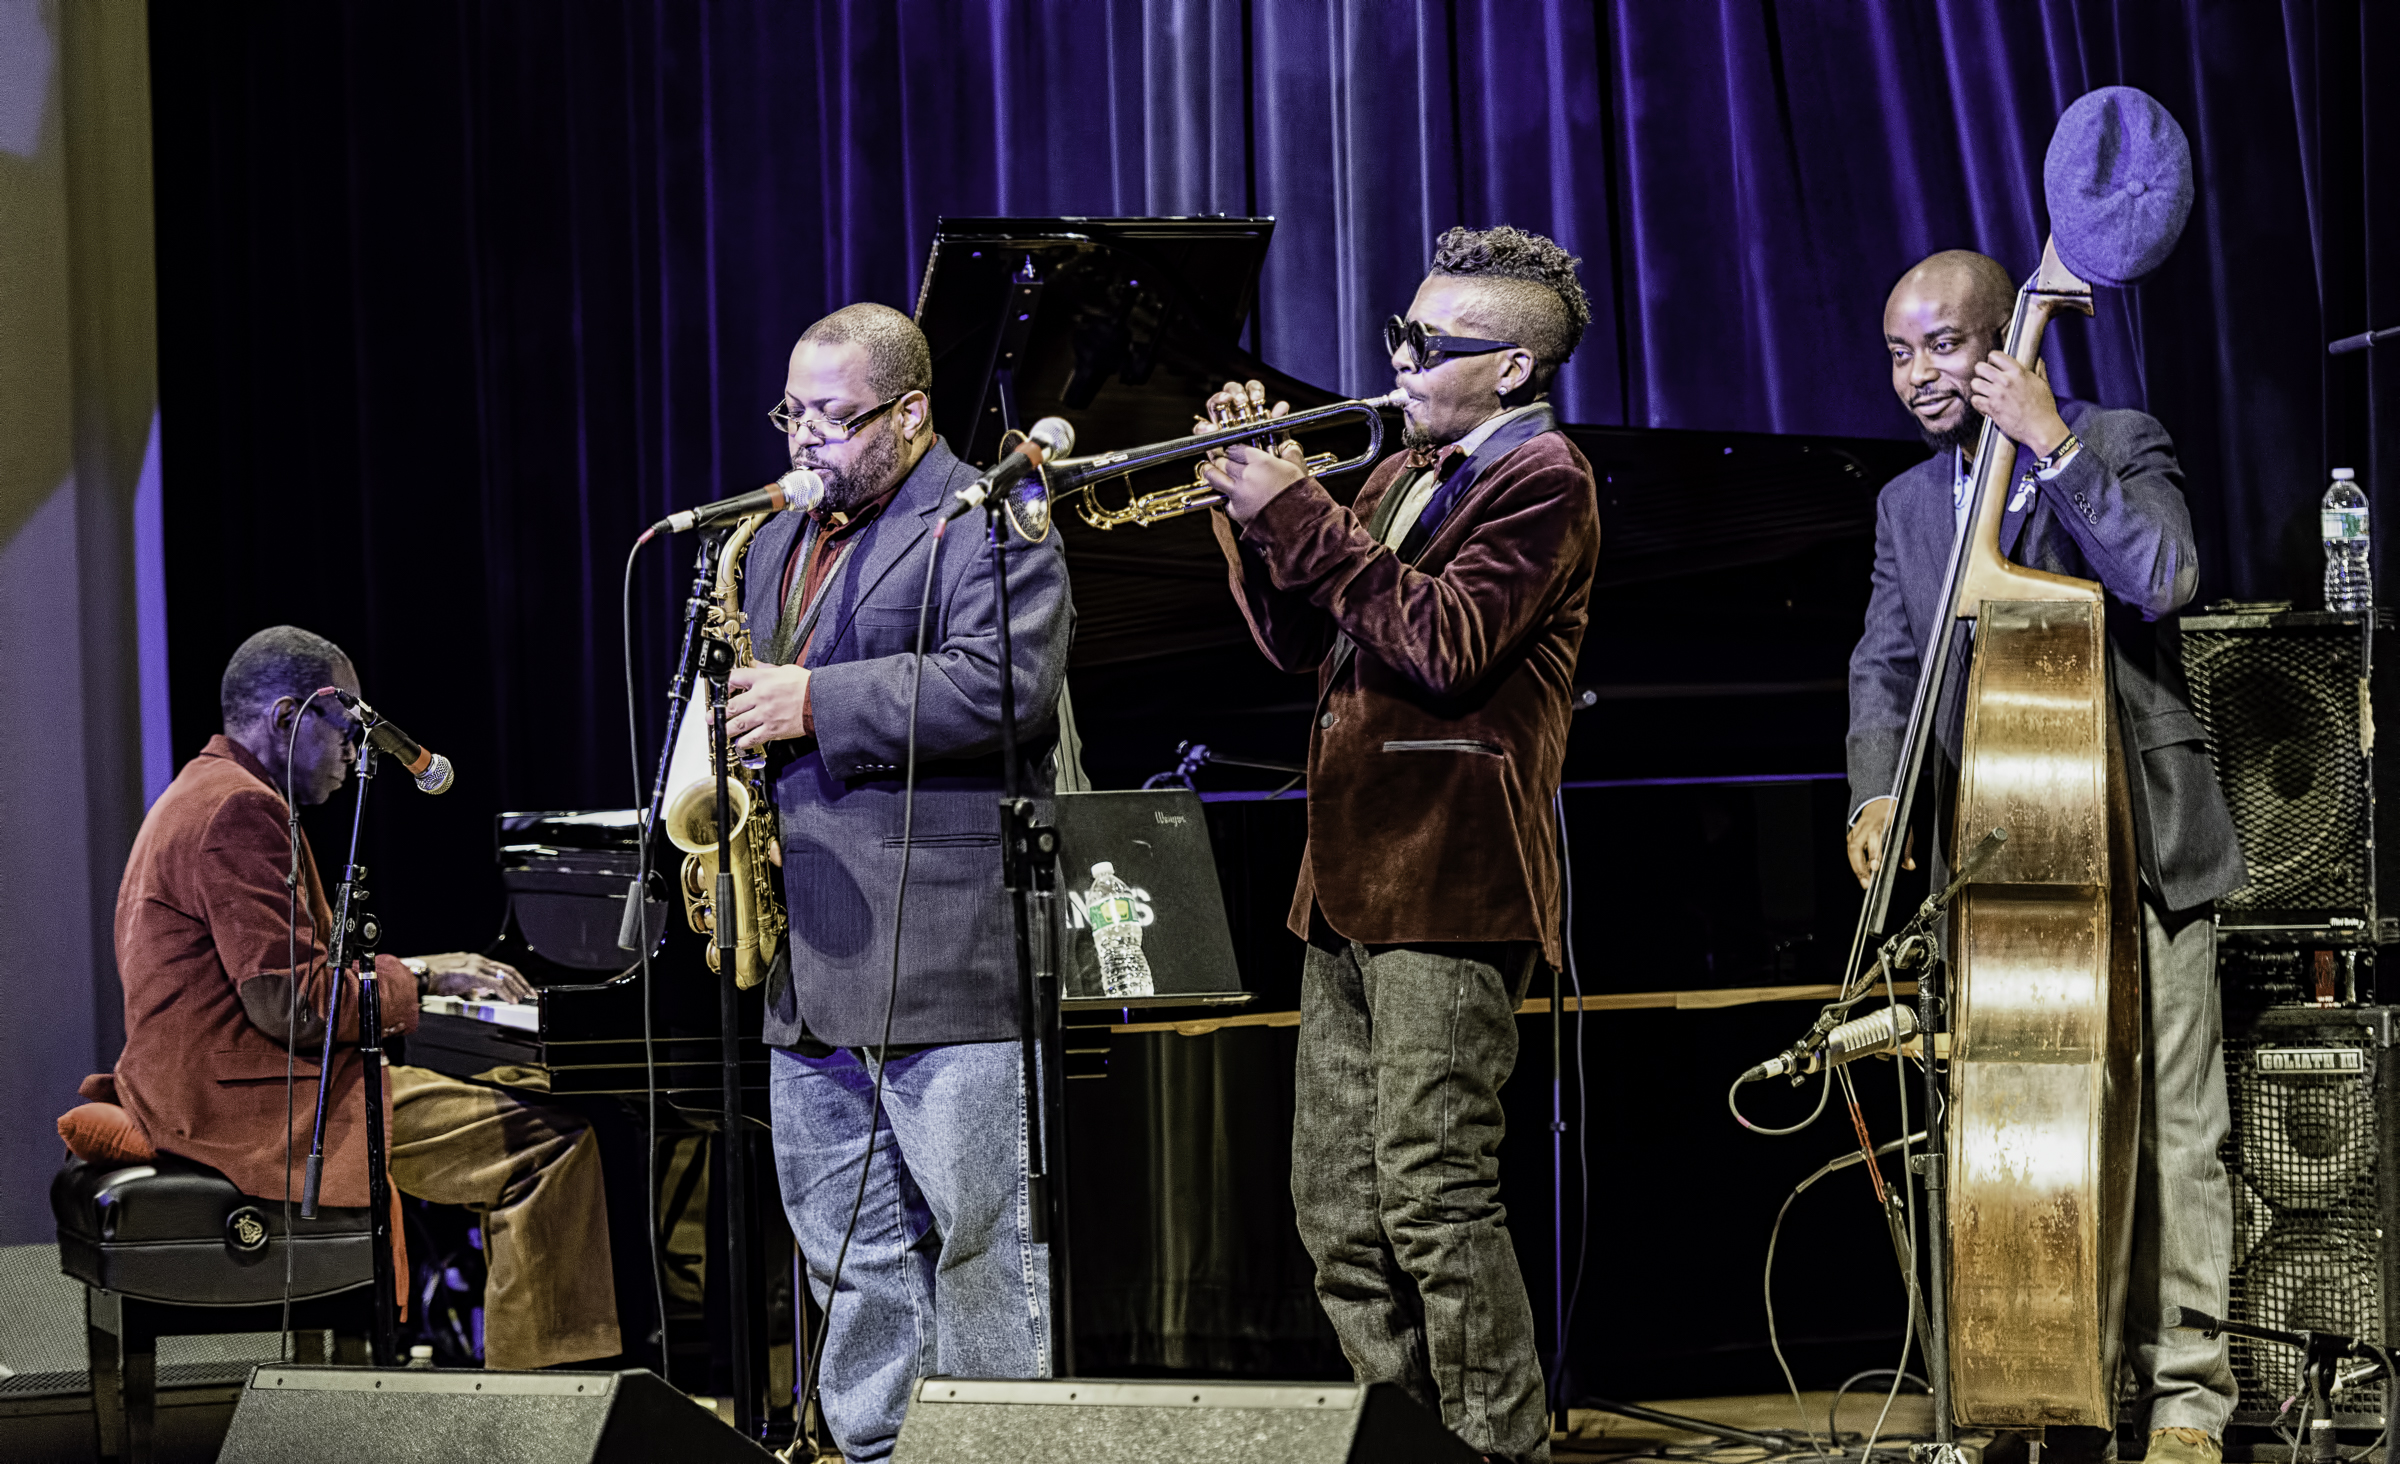 George Cables, Justin Robinson, Roy Hargrove and Ameen Saleem with the Roy Hargrove Quintet At The NYC Winter Jazzfest 2016